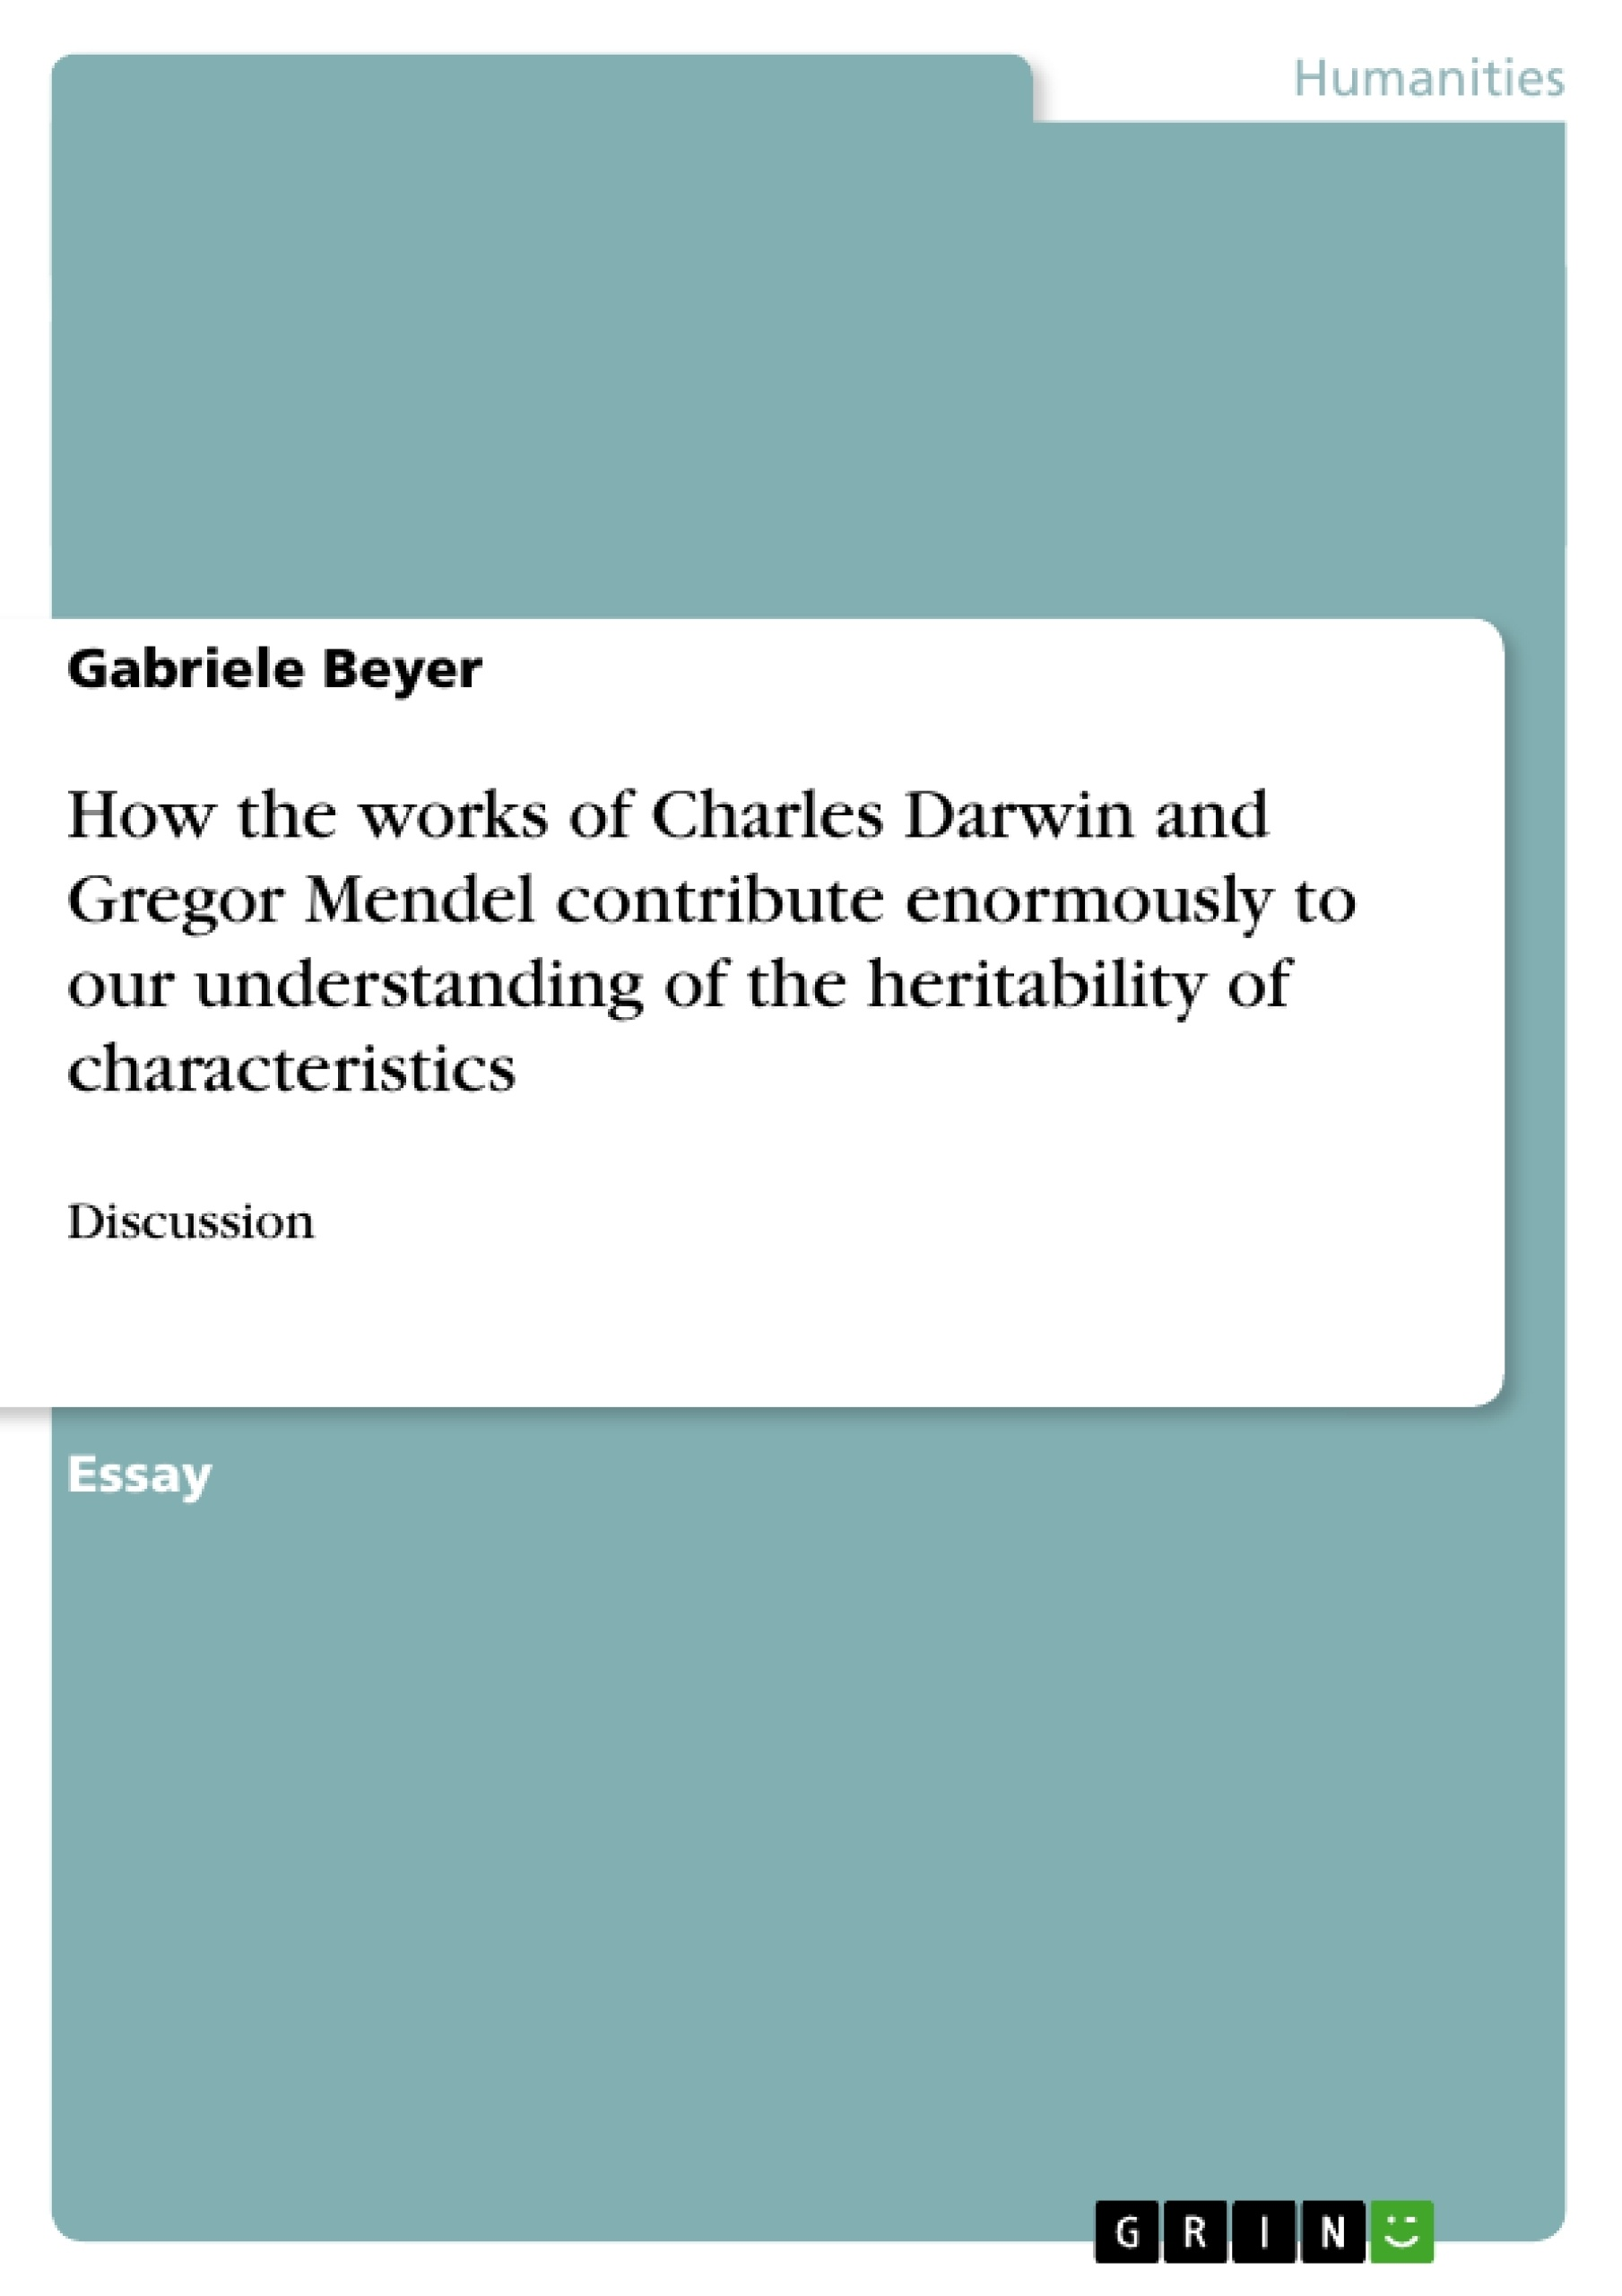 Title: How the works of Charles Darwin and Gregor Mendel contribute enormously to our understanding of the heritability of characteristics